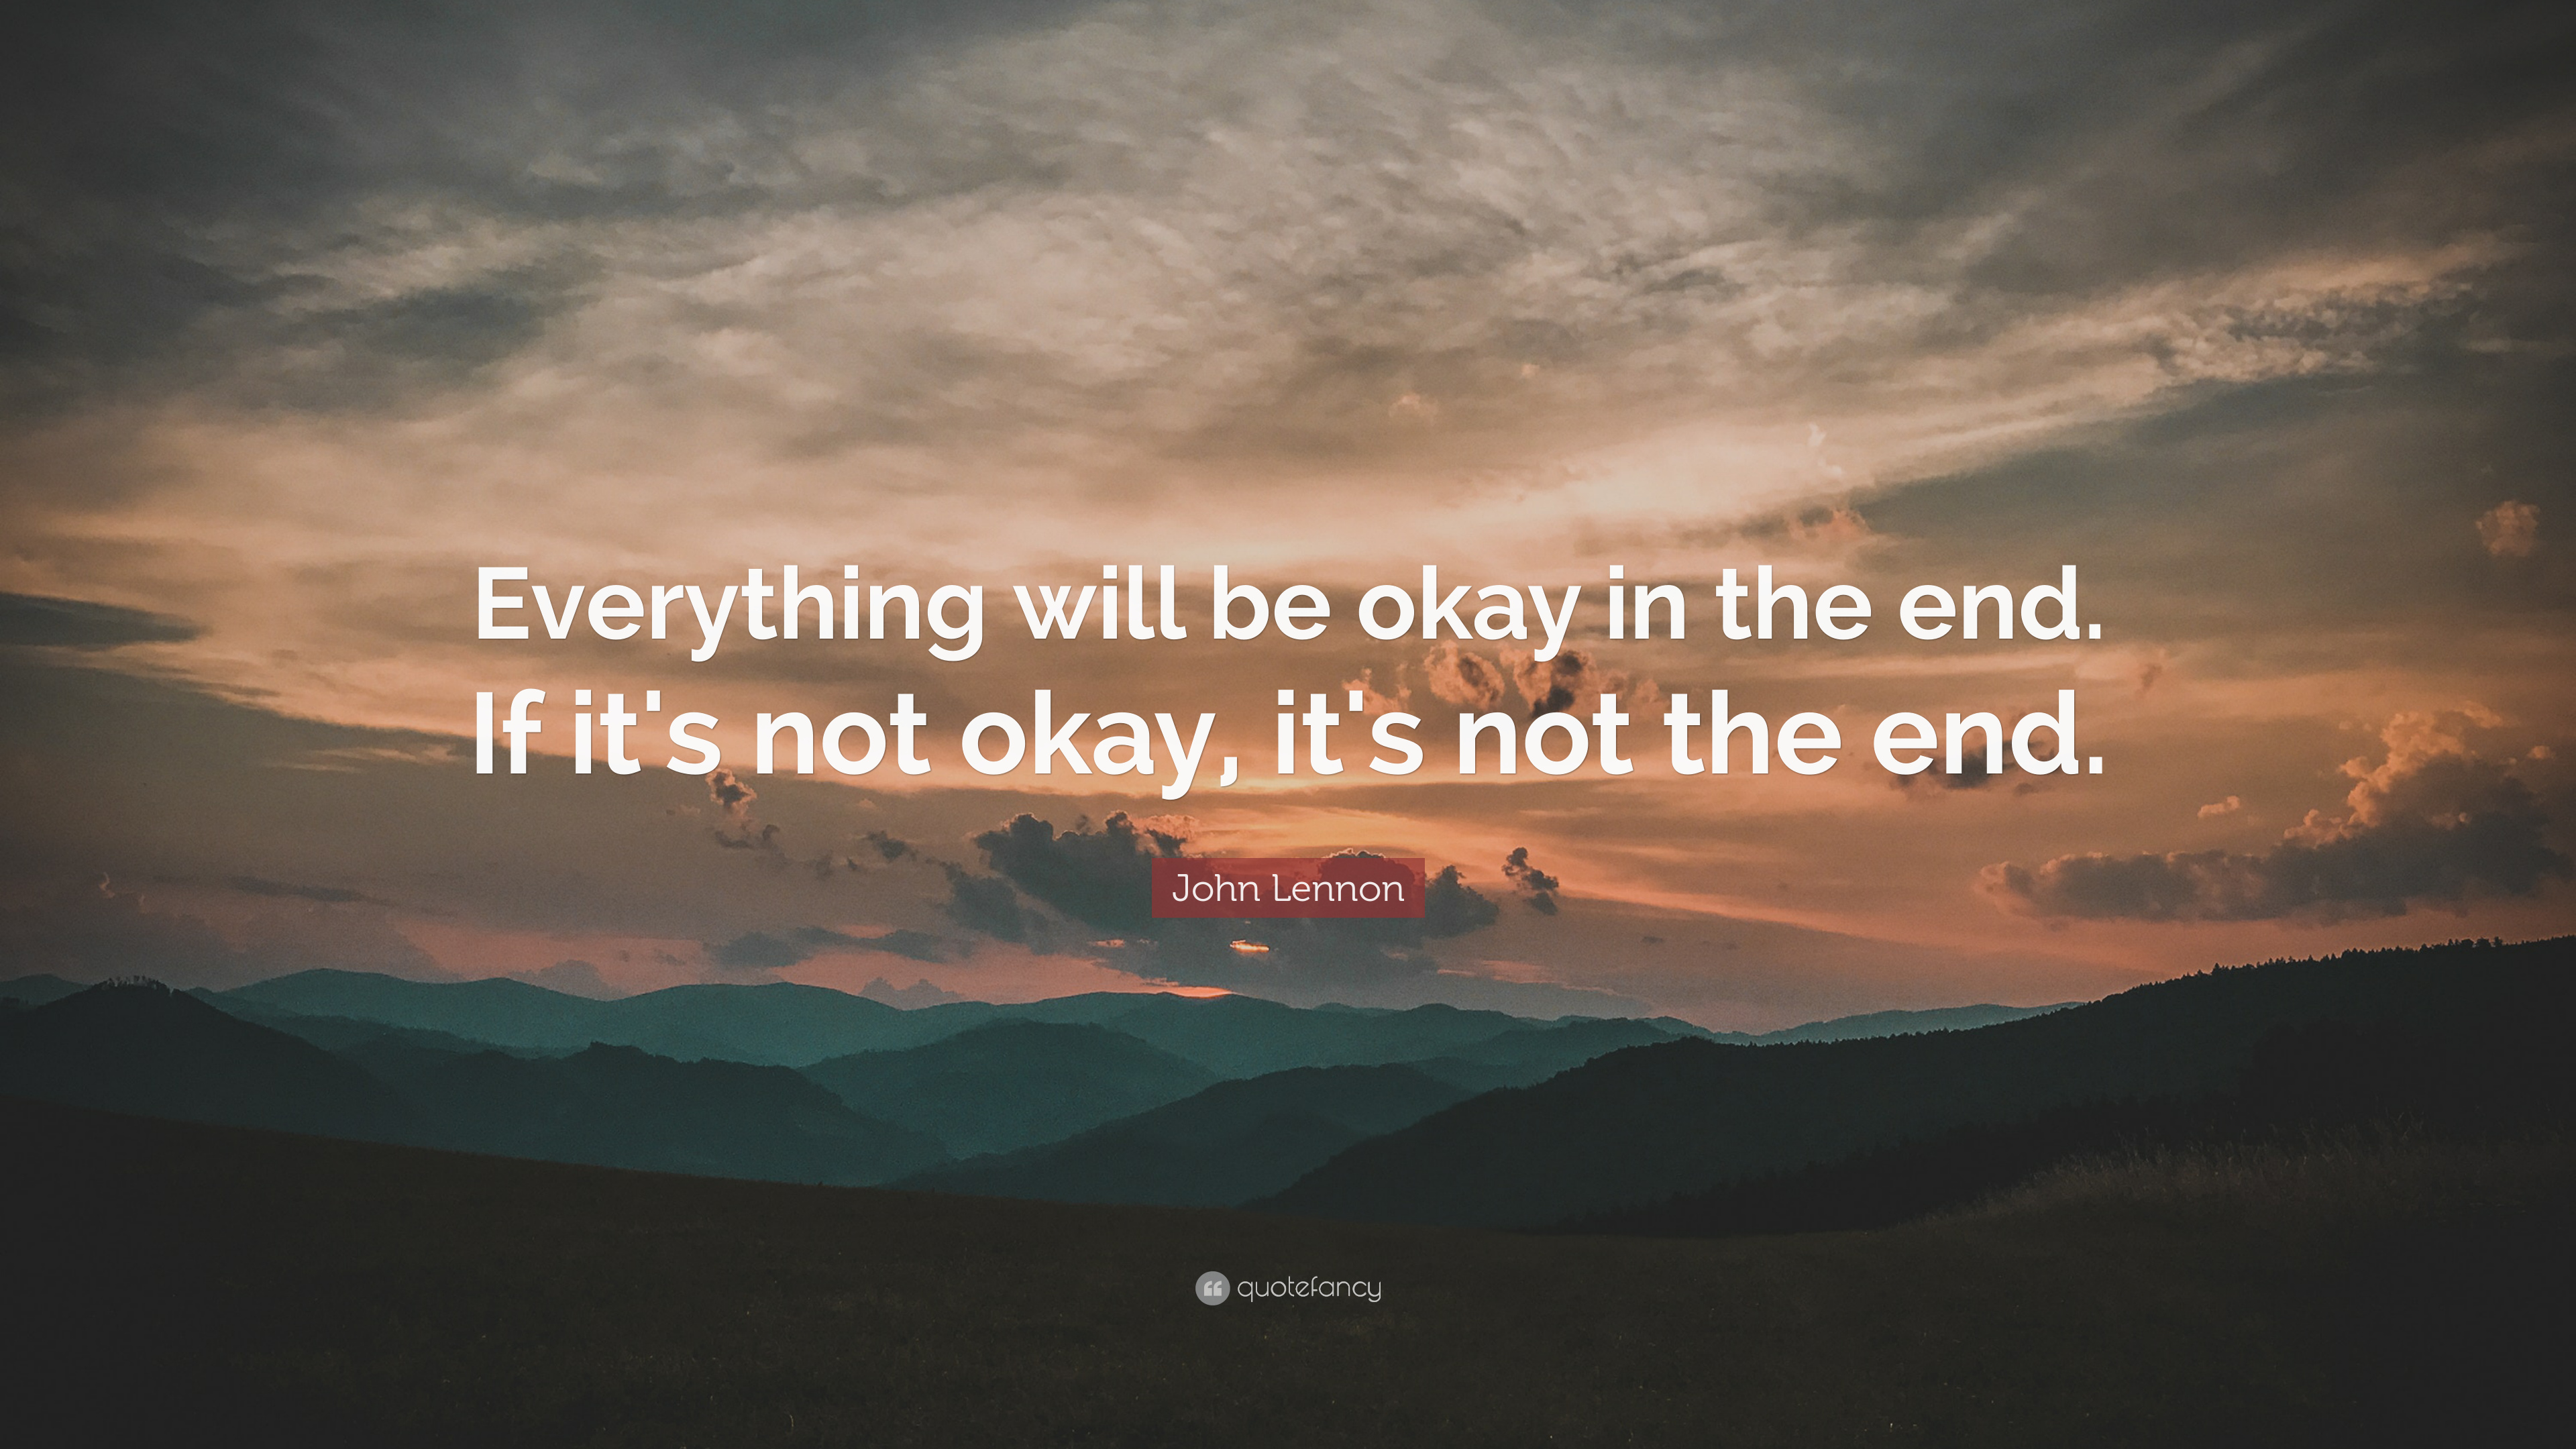 The fine will in everything end be Everything will